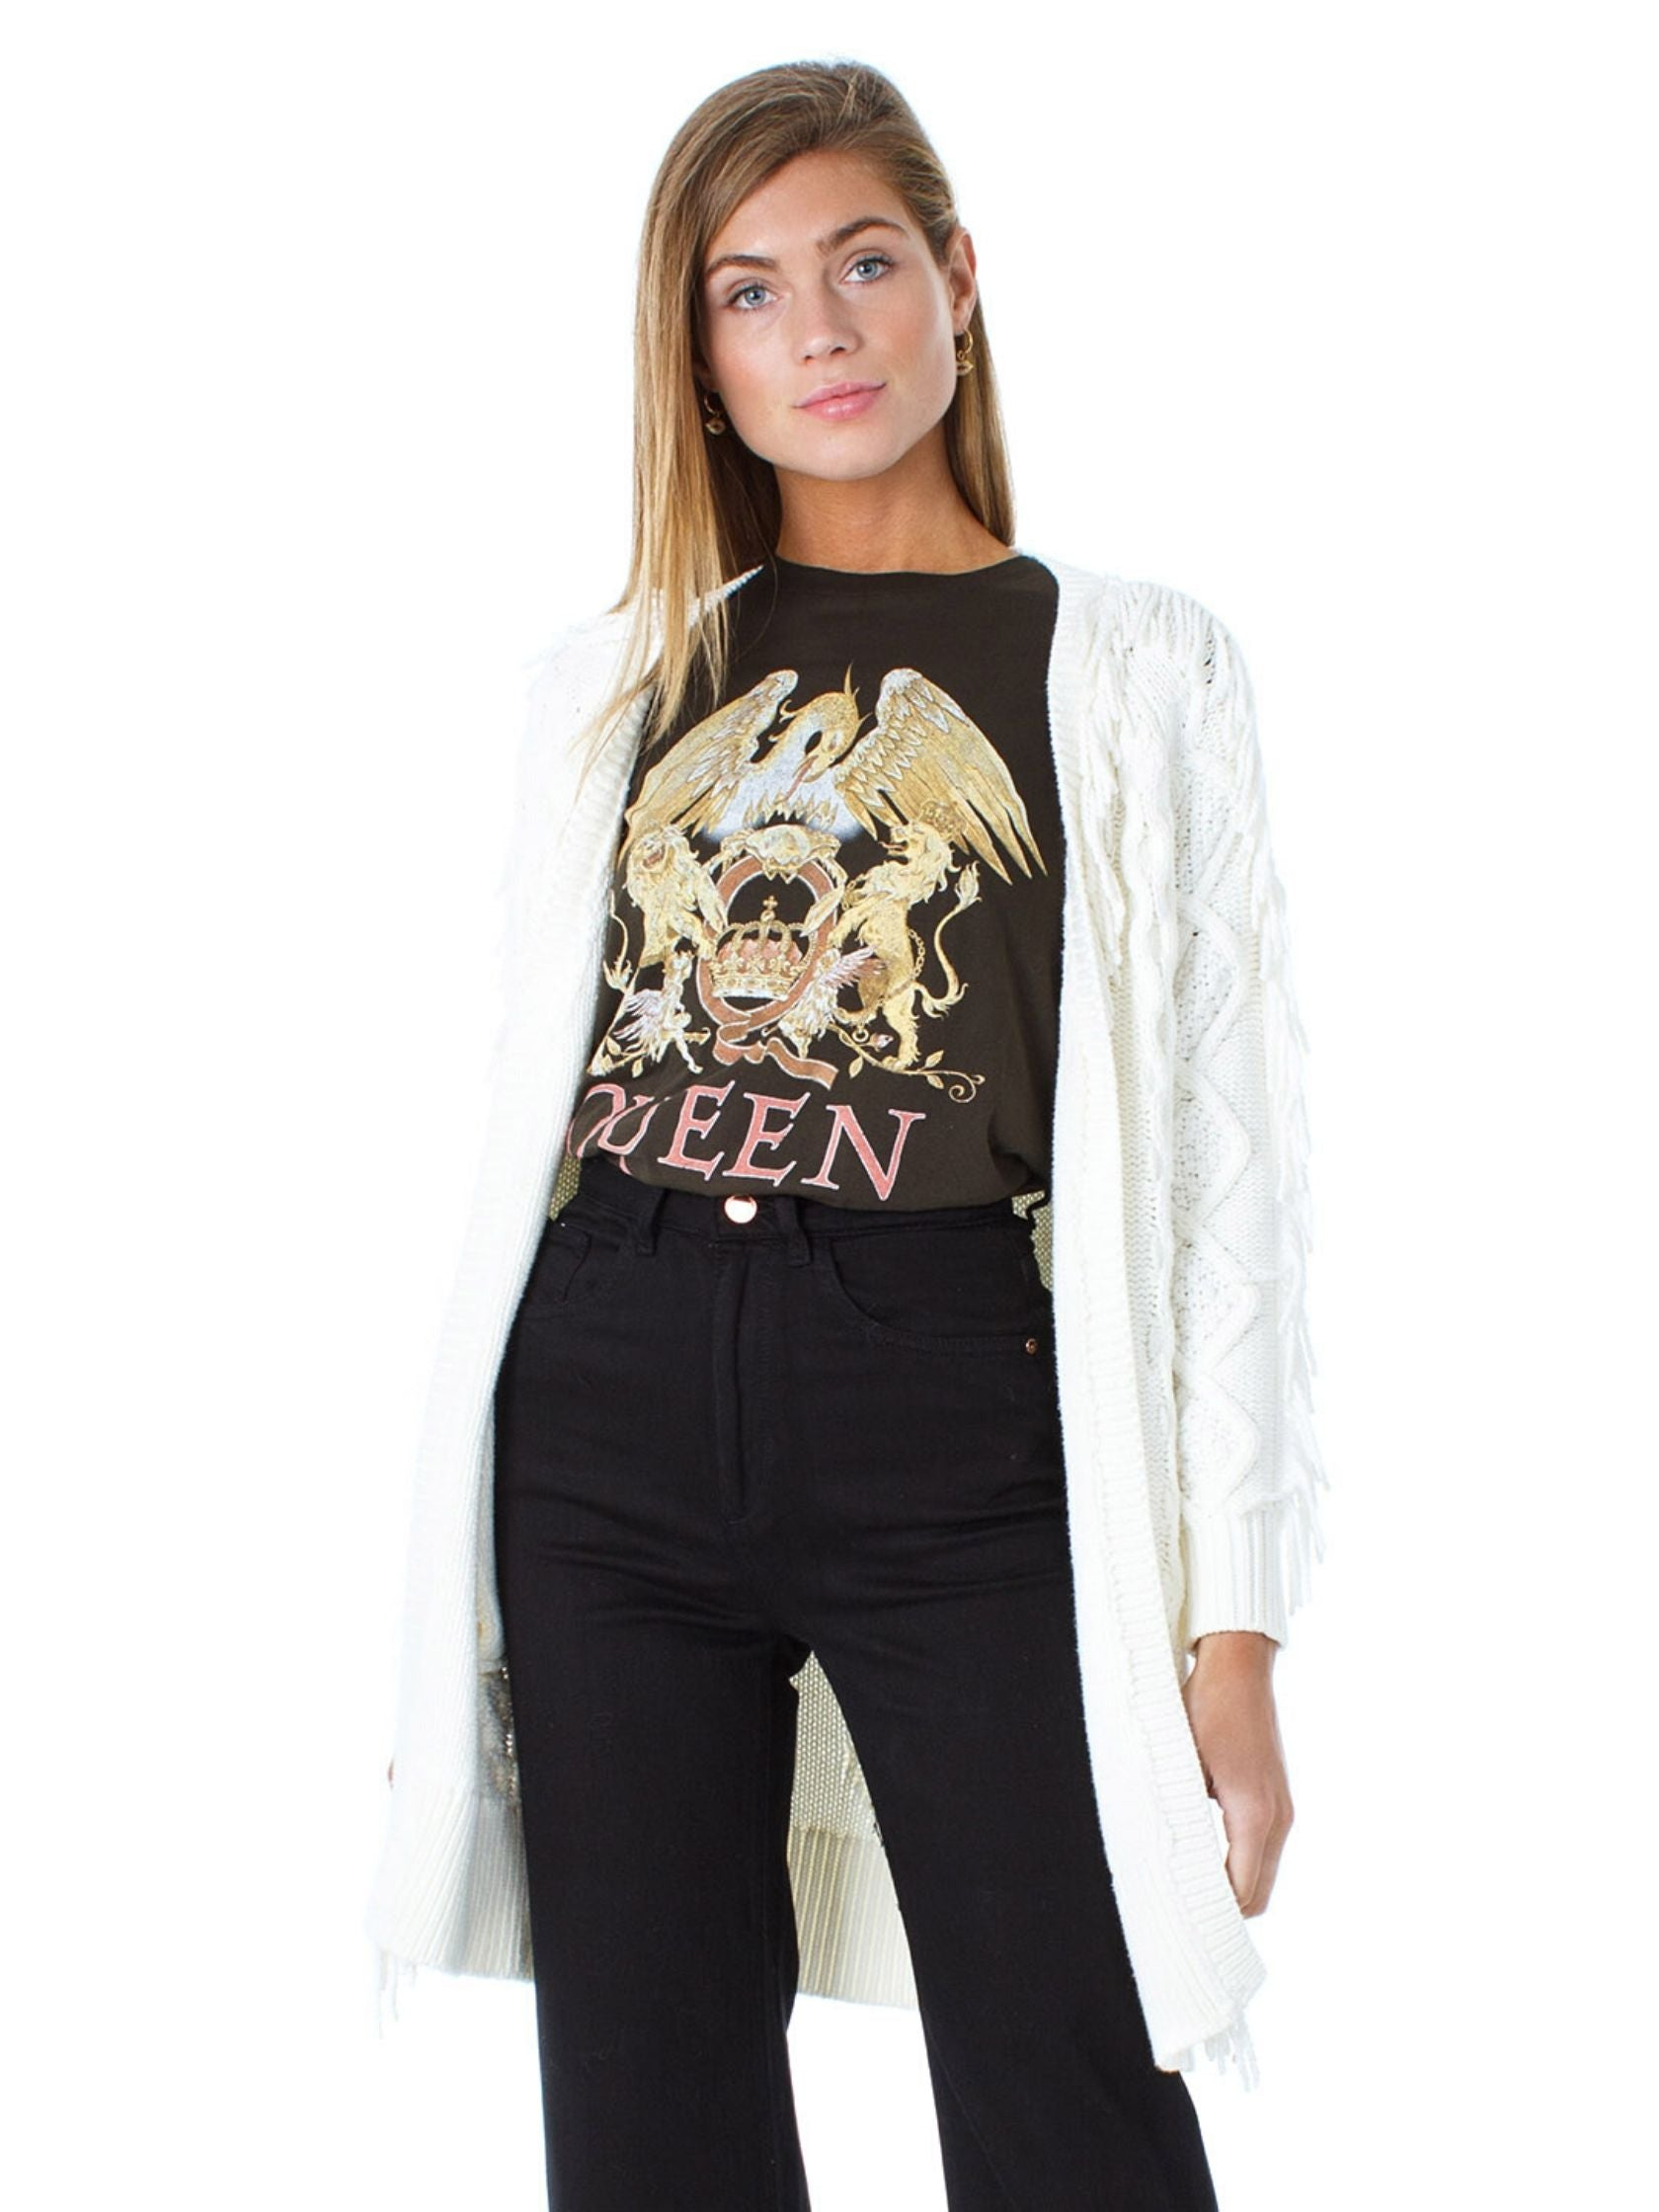 Girl outfit in a top rental from DAYDREAMER called Queens Crest Boyfriend Tee